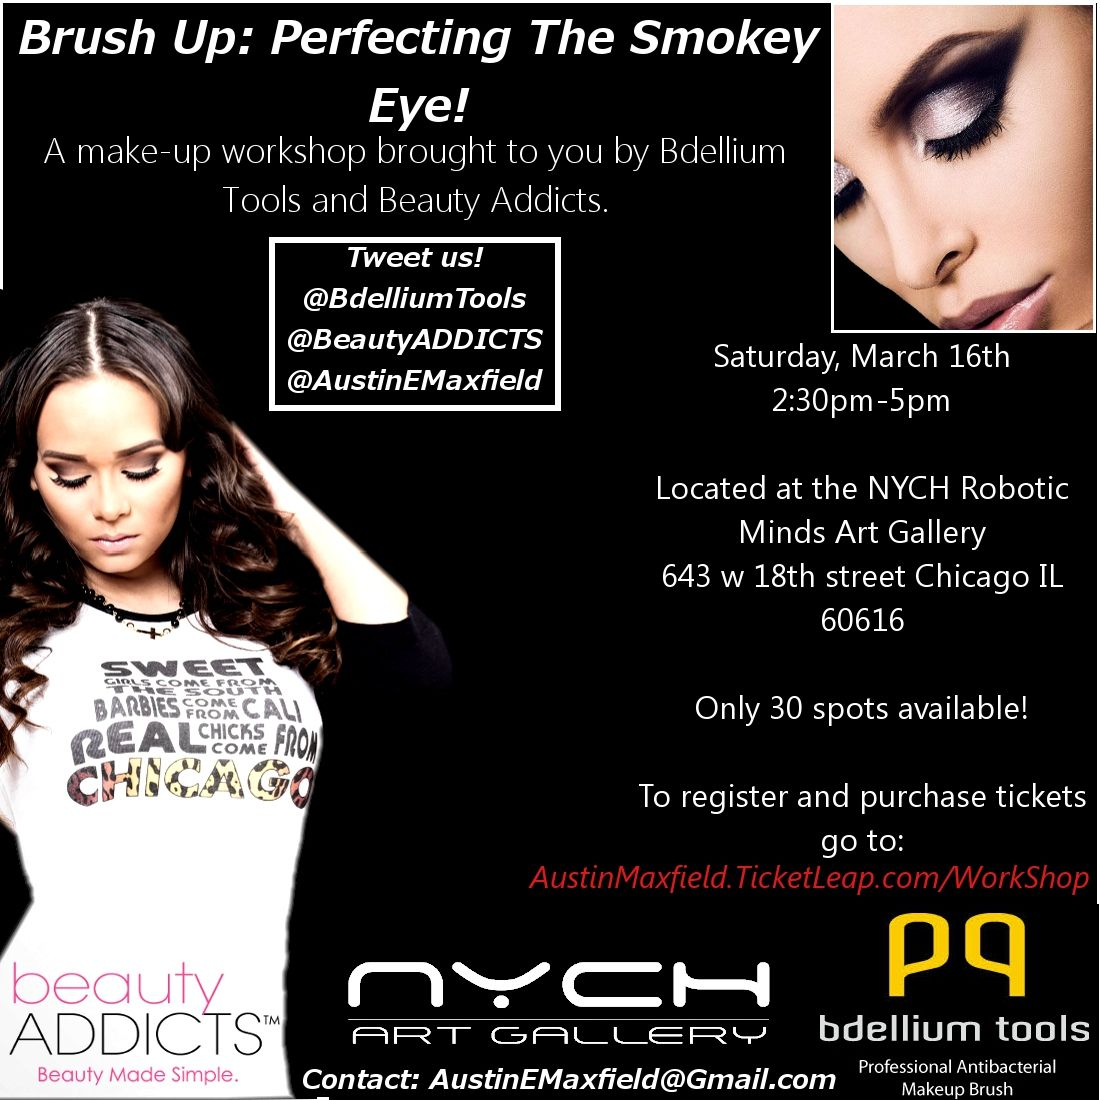 Austin from Chicagolicious presents a makeup workshop March 16th sponsored by Bdellium tools and Beauty Addicts! This will teach how to perfect the smokey eye! #makeup #smokeyeye #chicagolicious #bdelliumtools #beautyaddicts #chicago #mua #makeupartist #smokey #eye #chicago #workshop #chicagolicious #makeup #austinmaxfield #nych #artgallery #roboticminds #twitter #instagram #facebook